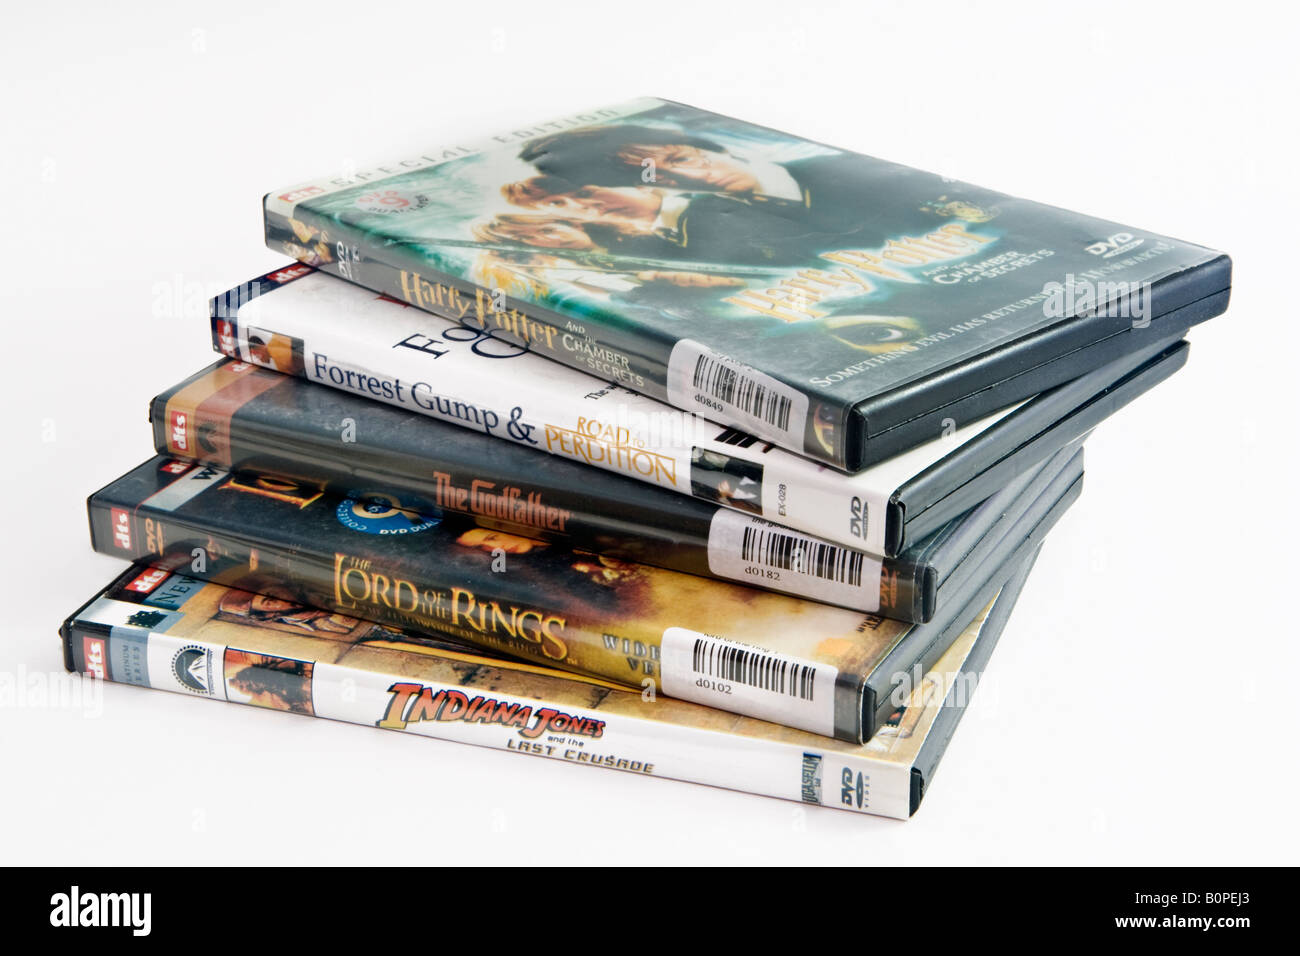 A pile of pirated DVDs of popular movies. *** For legal non-pirated DVDs search B83XE3 *** - Stock Image